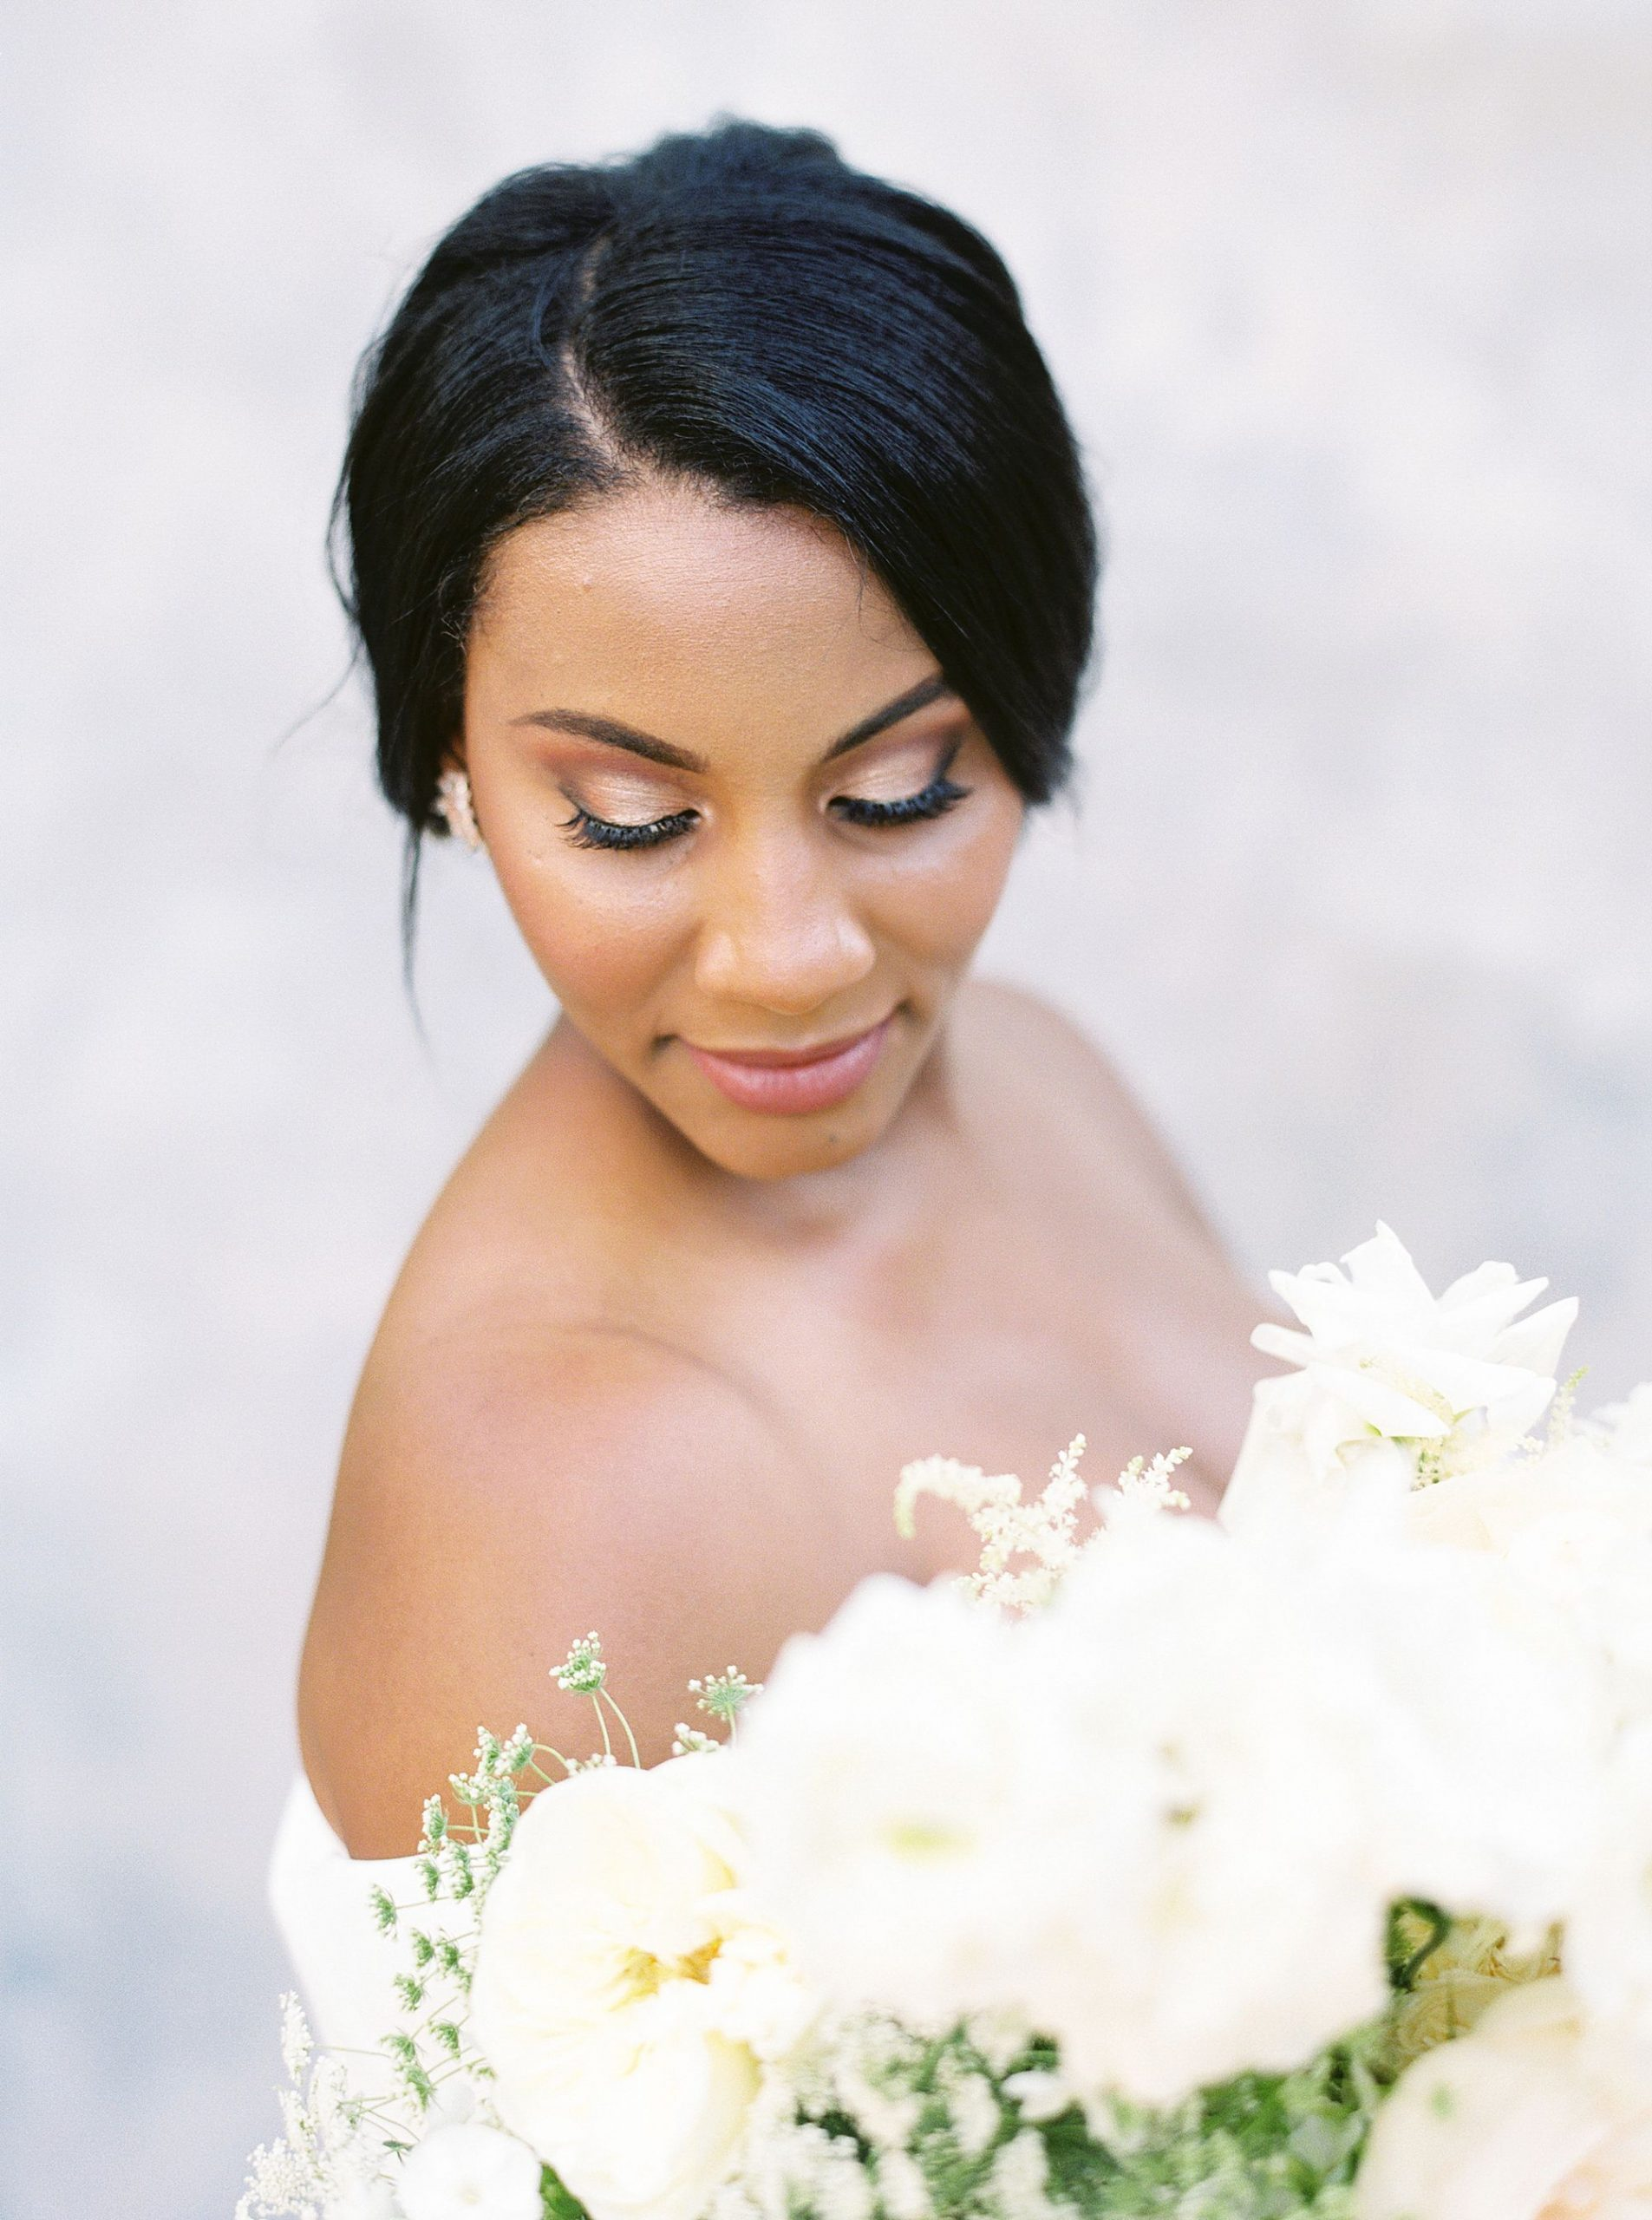 Park Winters Micro-Wedding Inspiration on Style Me Pretty - Stephanie Teague Events - Ashley Baumgartner - Park Winters Wedding - Black Tie Wedding - Micro-Wedding Sacramento Photographer_0016.jpg